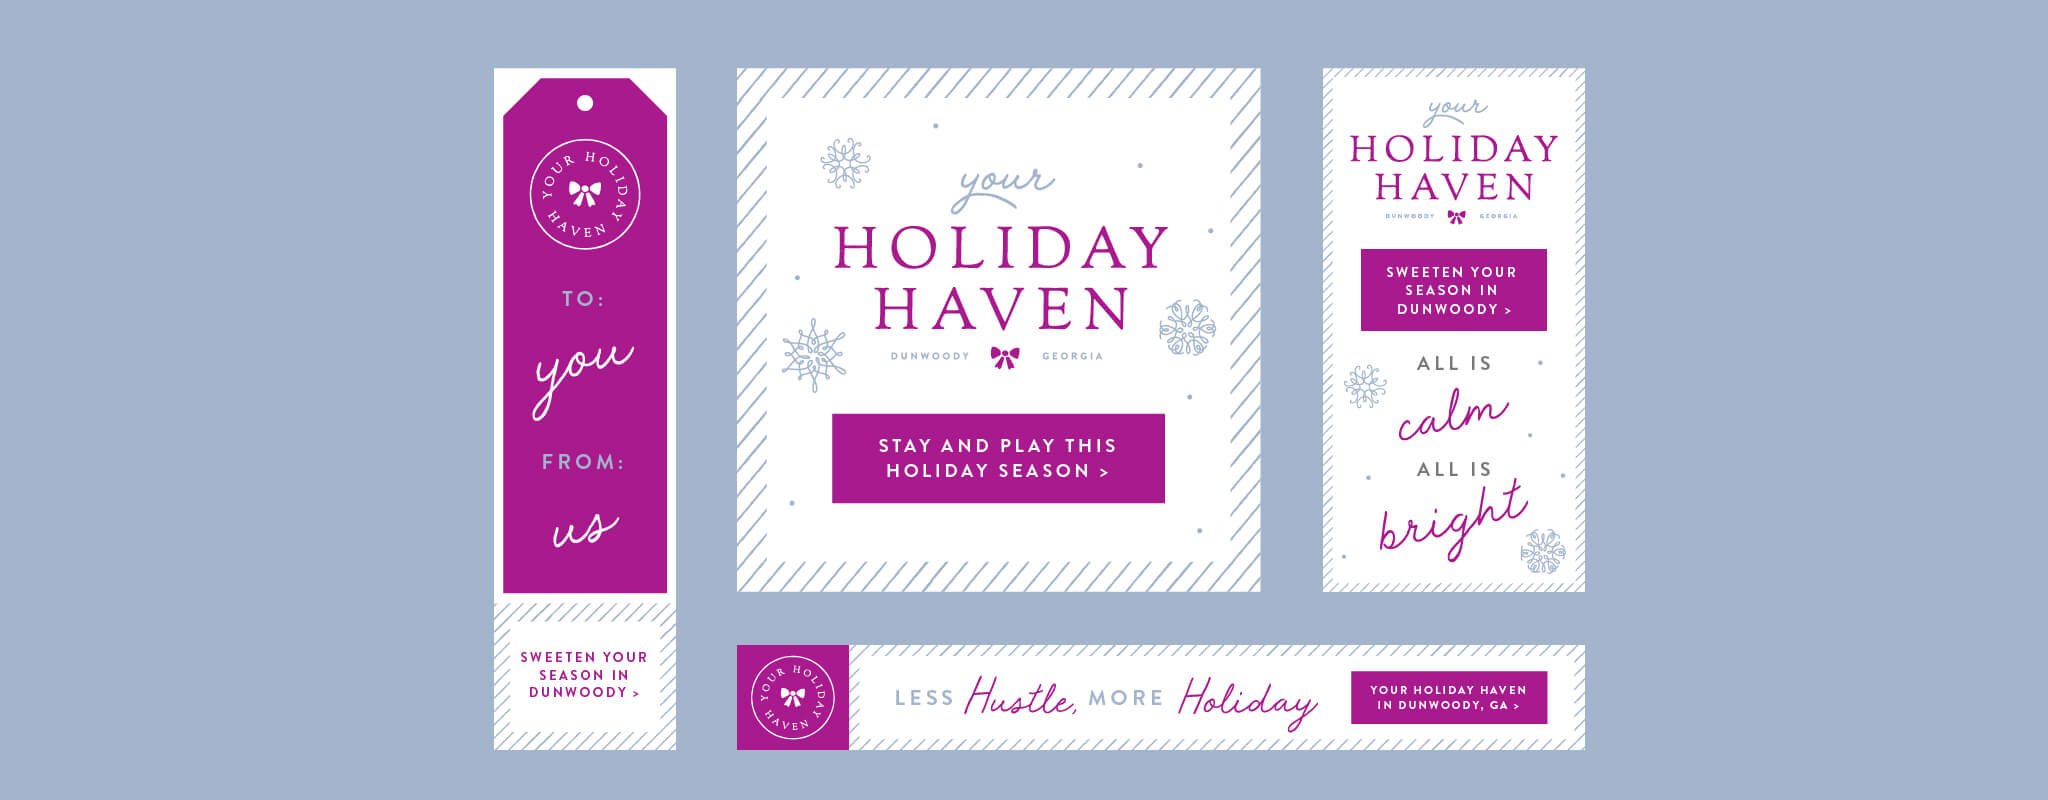 Your Holiday Haven Ads